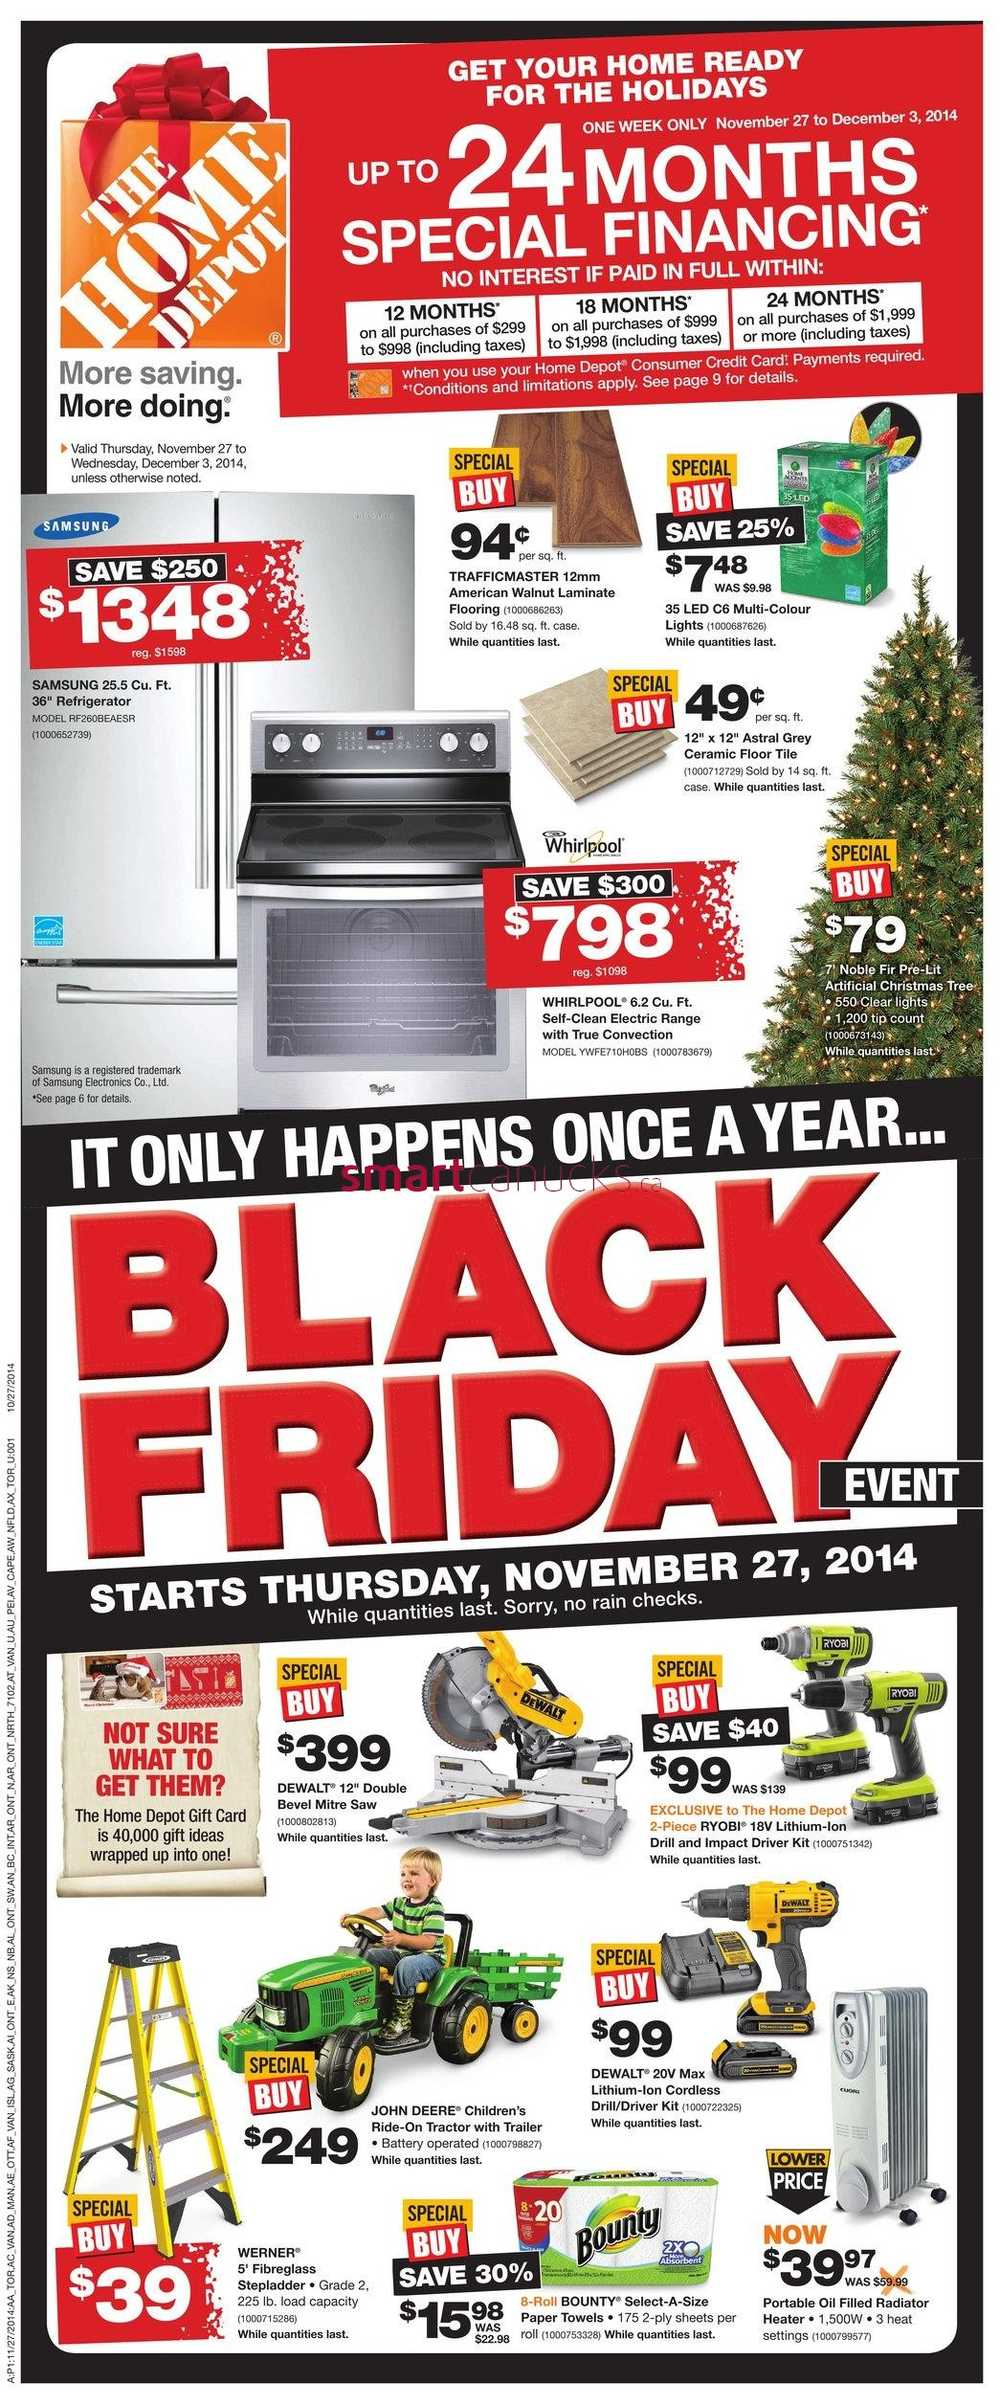 home depot on black friday 2014 flyer november 27 to december 3. Black Bedroom Furniture Sets. Home Design Ideas